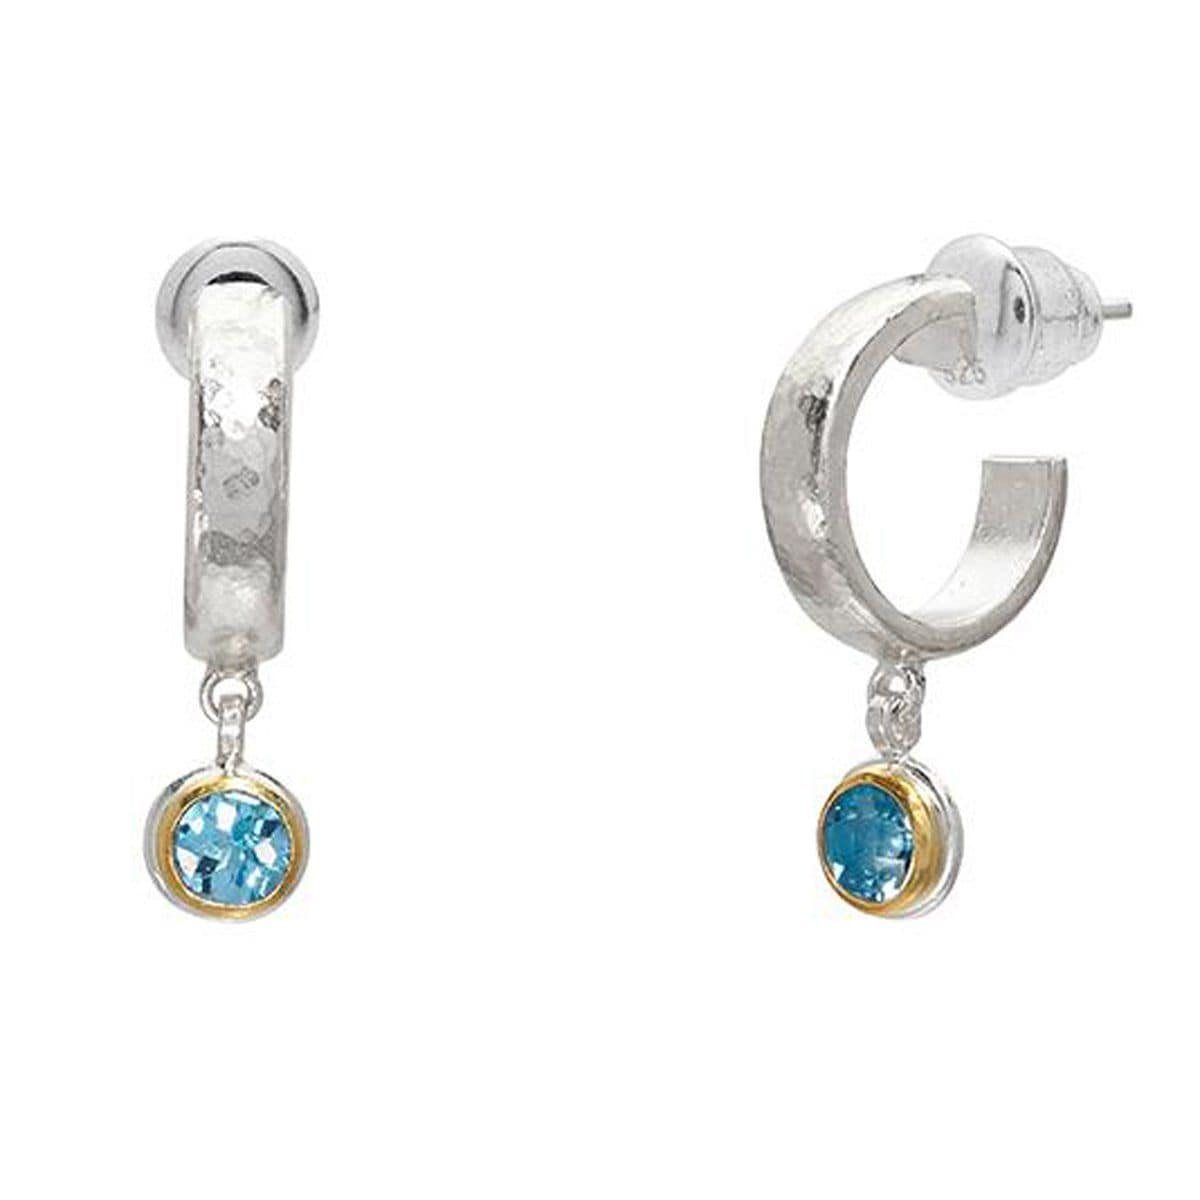 Round Blue Topaz Skittle Hoop Earrings - SE-390-BT5-RD-GURHAN-Renee Taylor Gallery